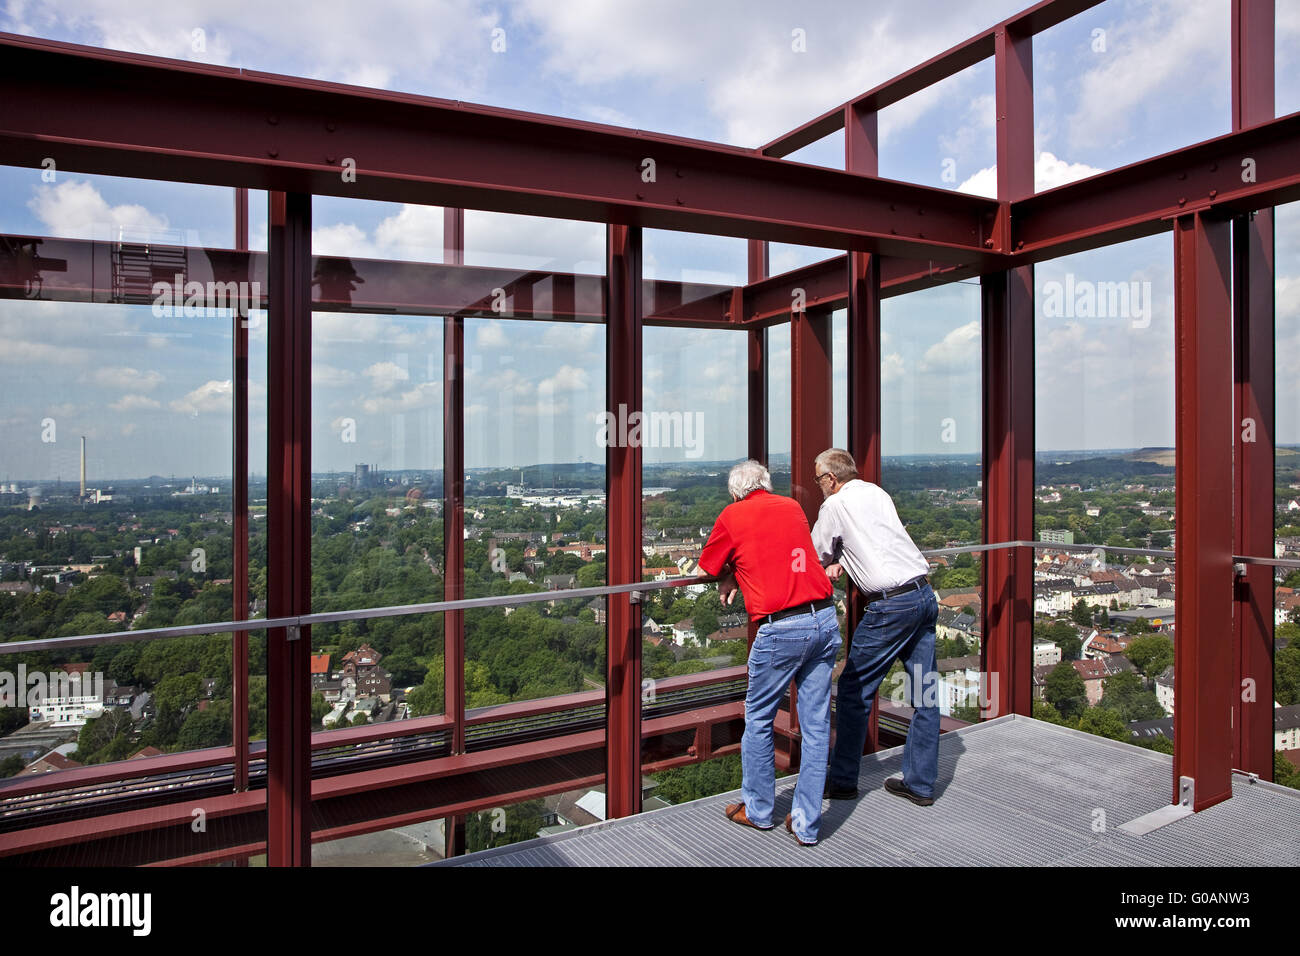 View from Nordstern tower, Gelsenkirchen, Germany - Stock Image